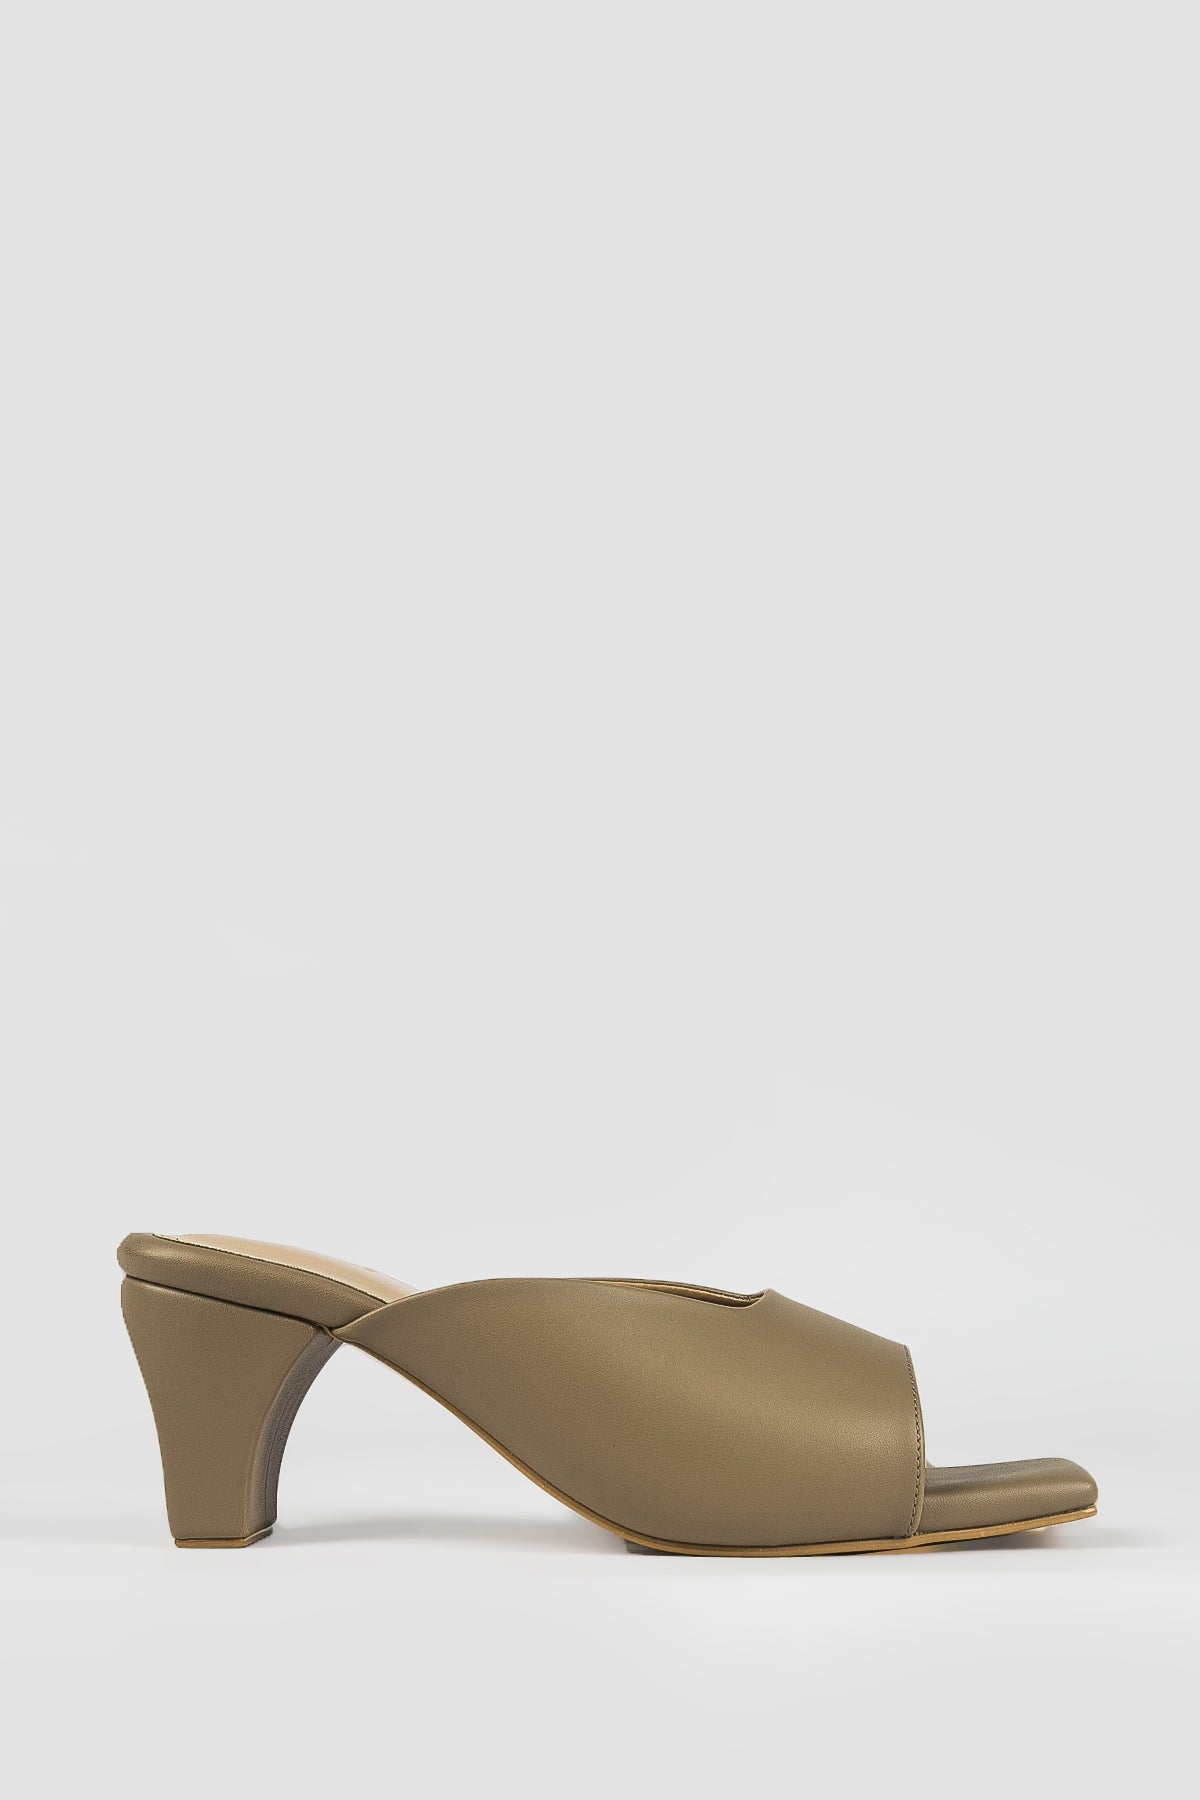 Jemima Shoes in Nude